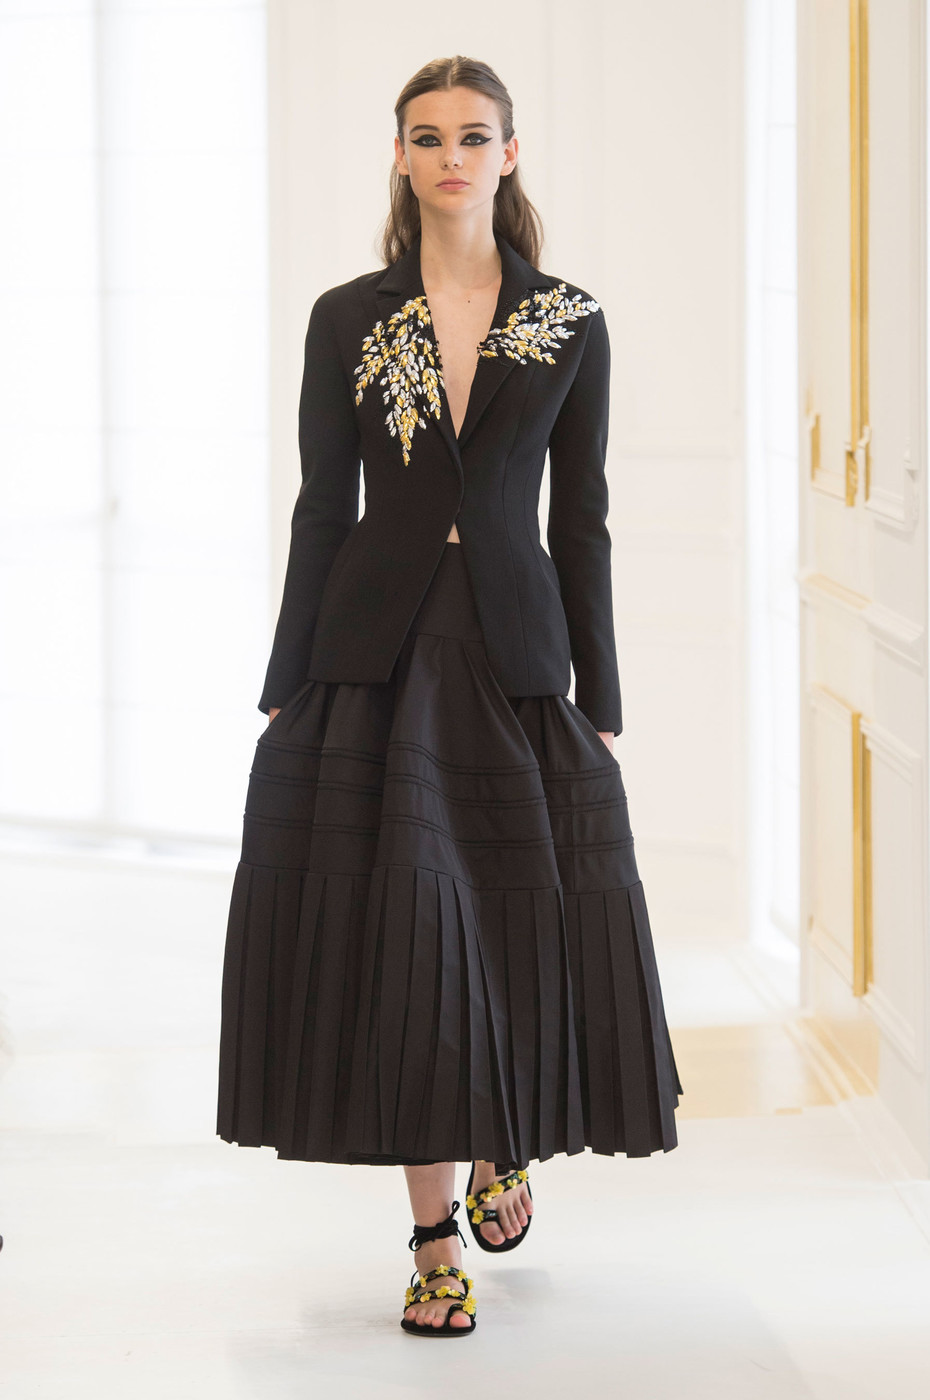 Christian Dior Fall 2016 Runway Pictures Livingly